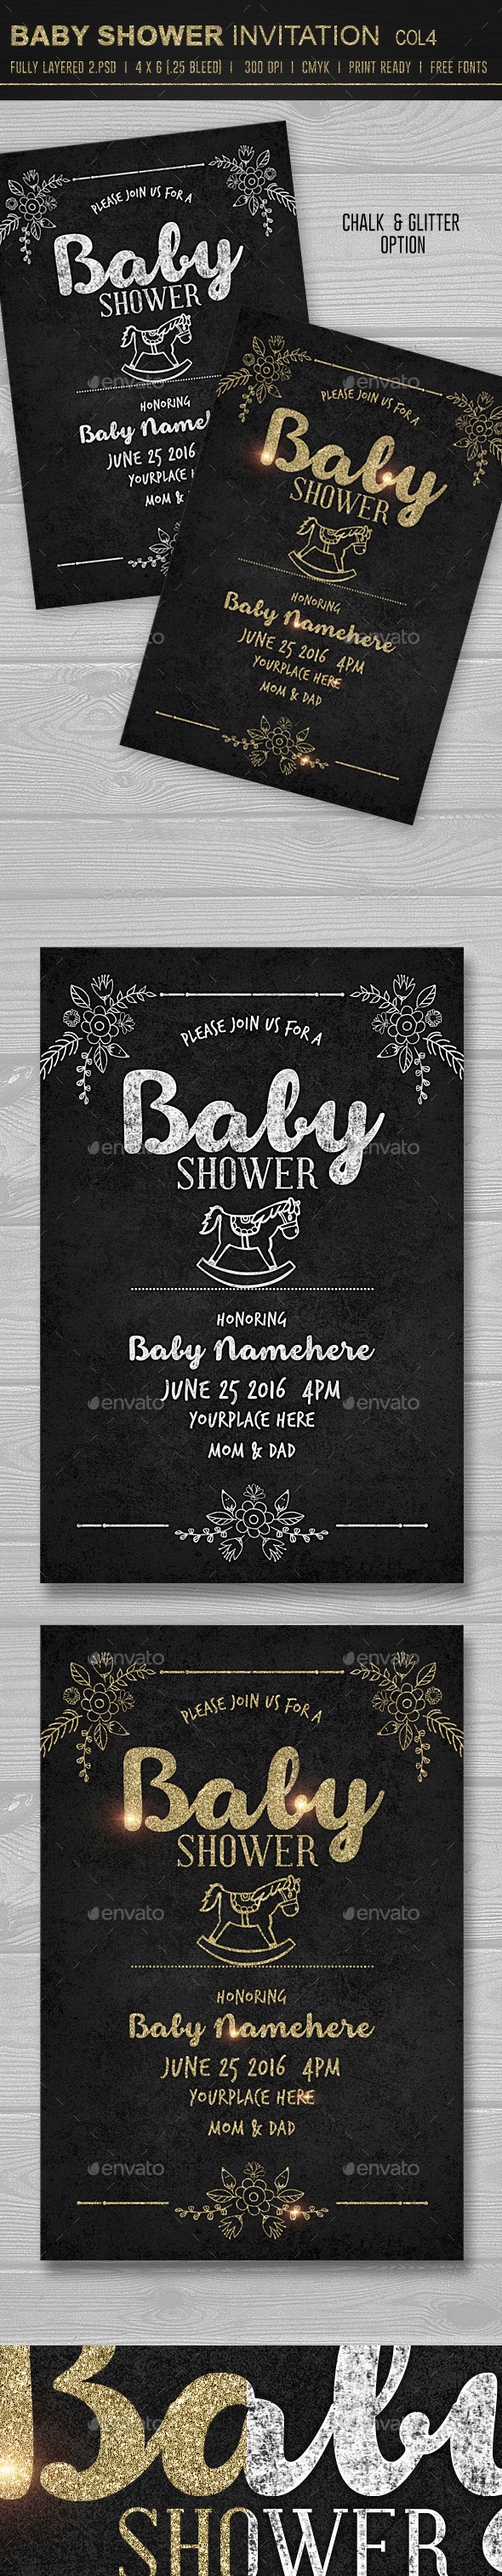 Baby Shower Invitation 4 - Cards & Invites Print Templates